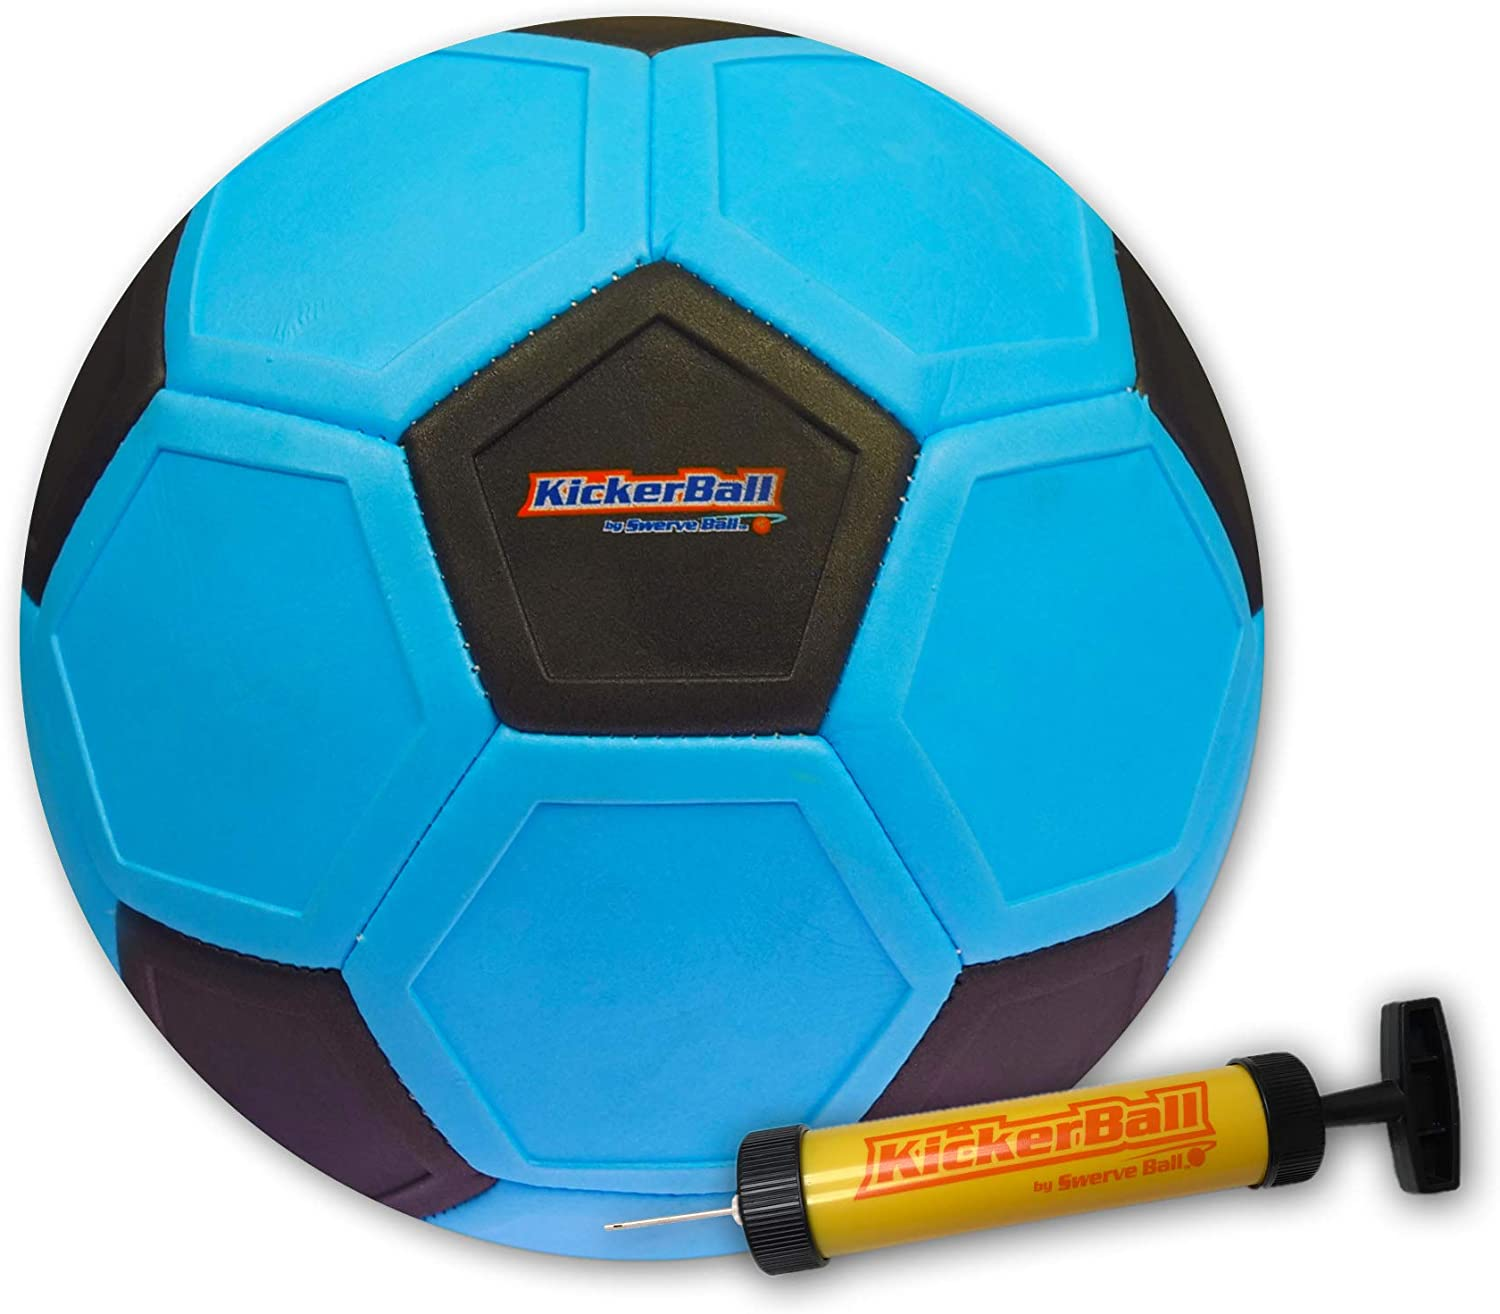 Kickerball Curve and Swerve Soccer BallFootball Toy Kick Like The Pros, Great Gift for Boys and Girls Perfect for Outdoor & Indoor Match or